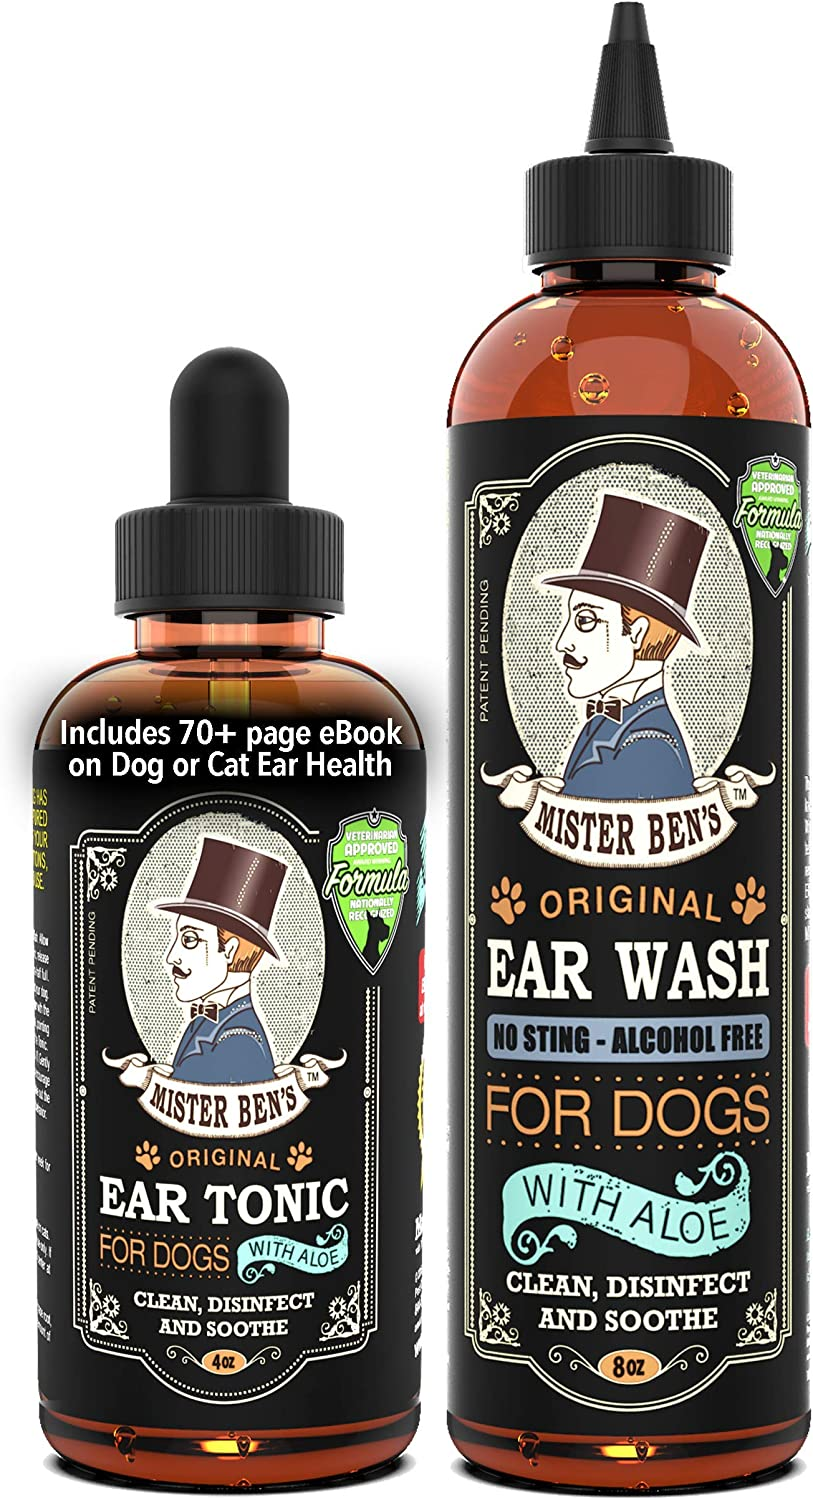 Mister Ben's Original Ear Wash